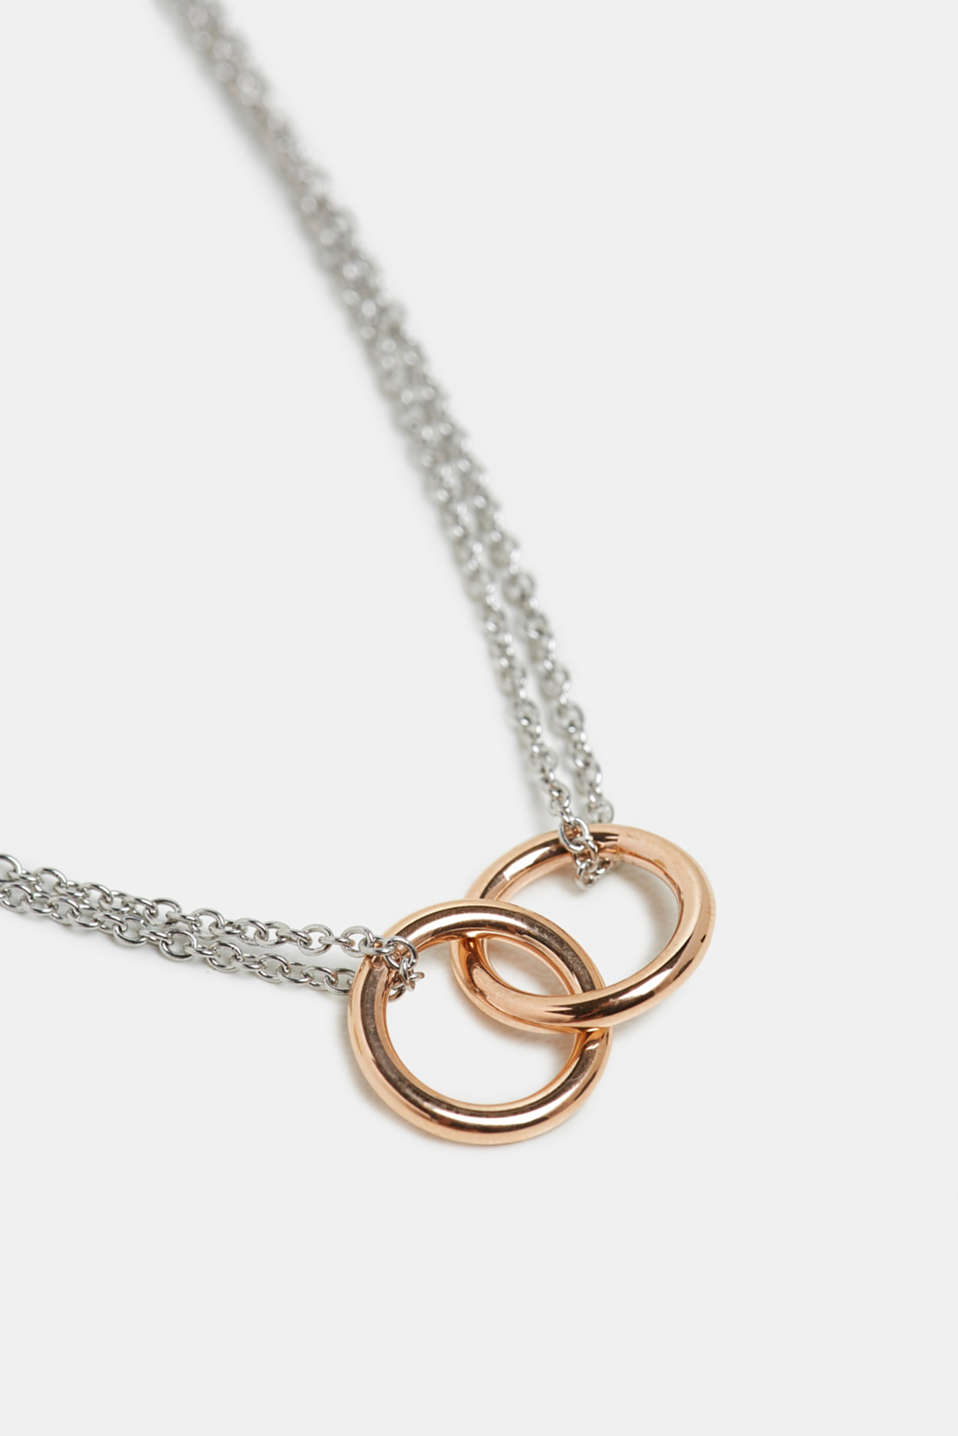 Necklace with ring pendants, stainless steel, ROSEGOLD, detail image number 1